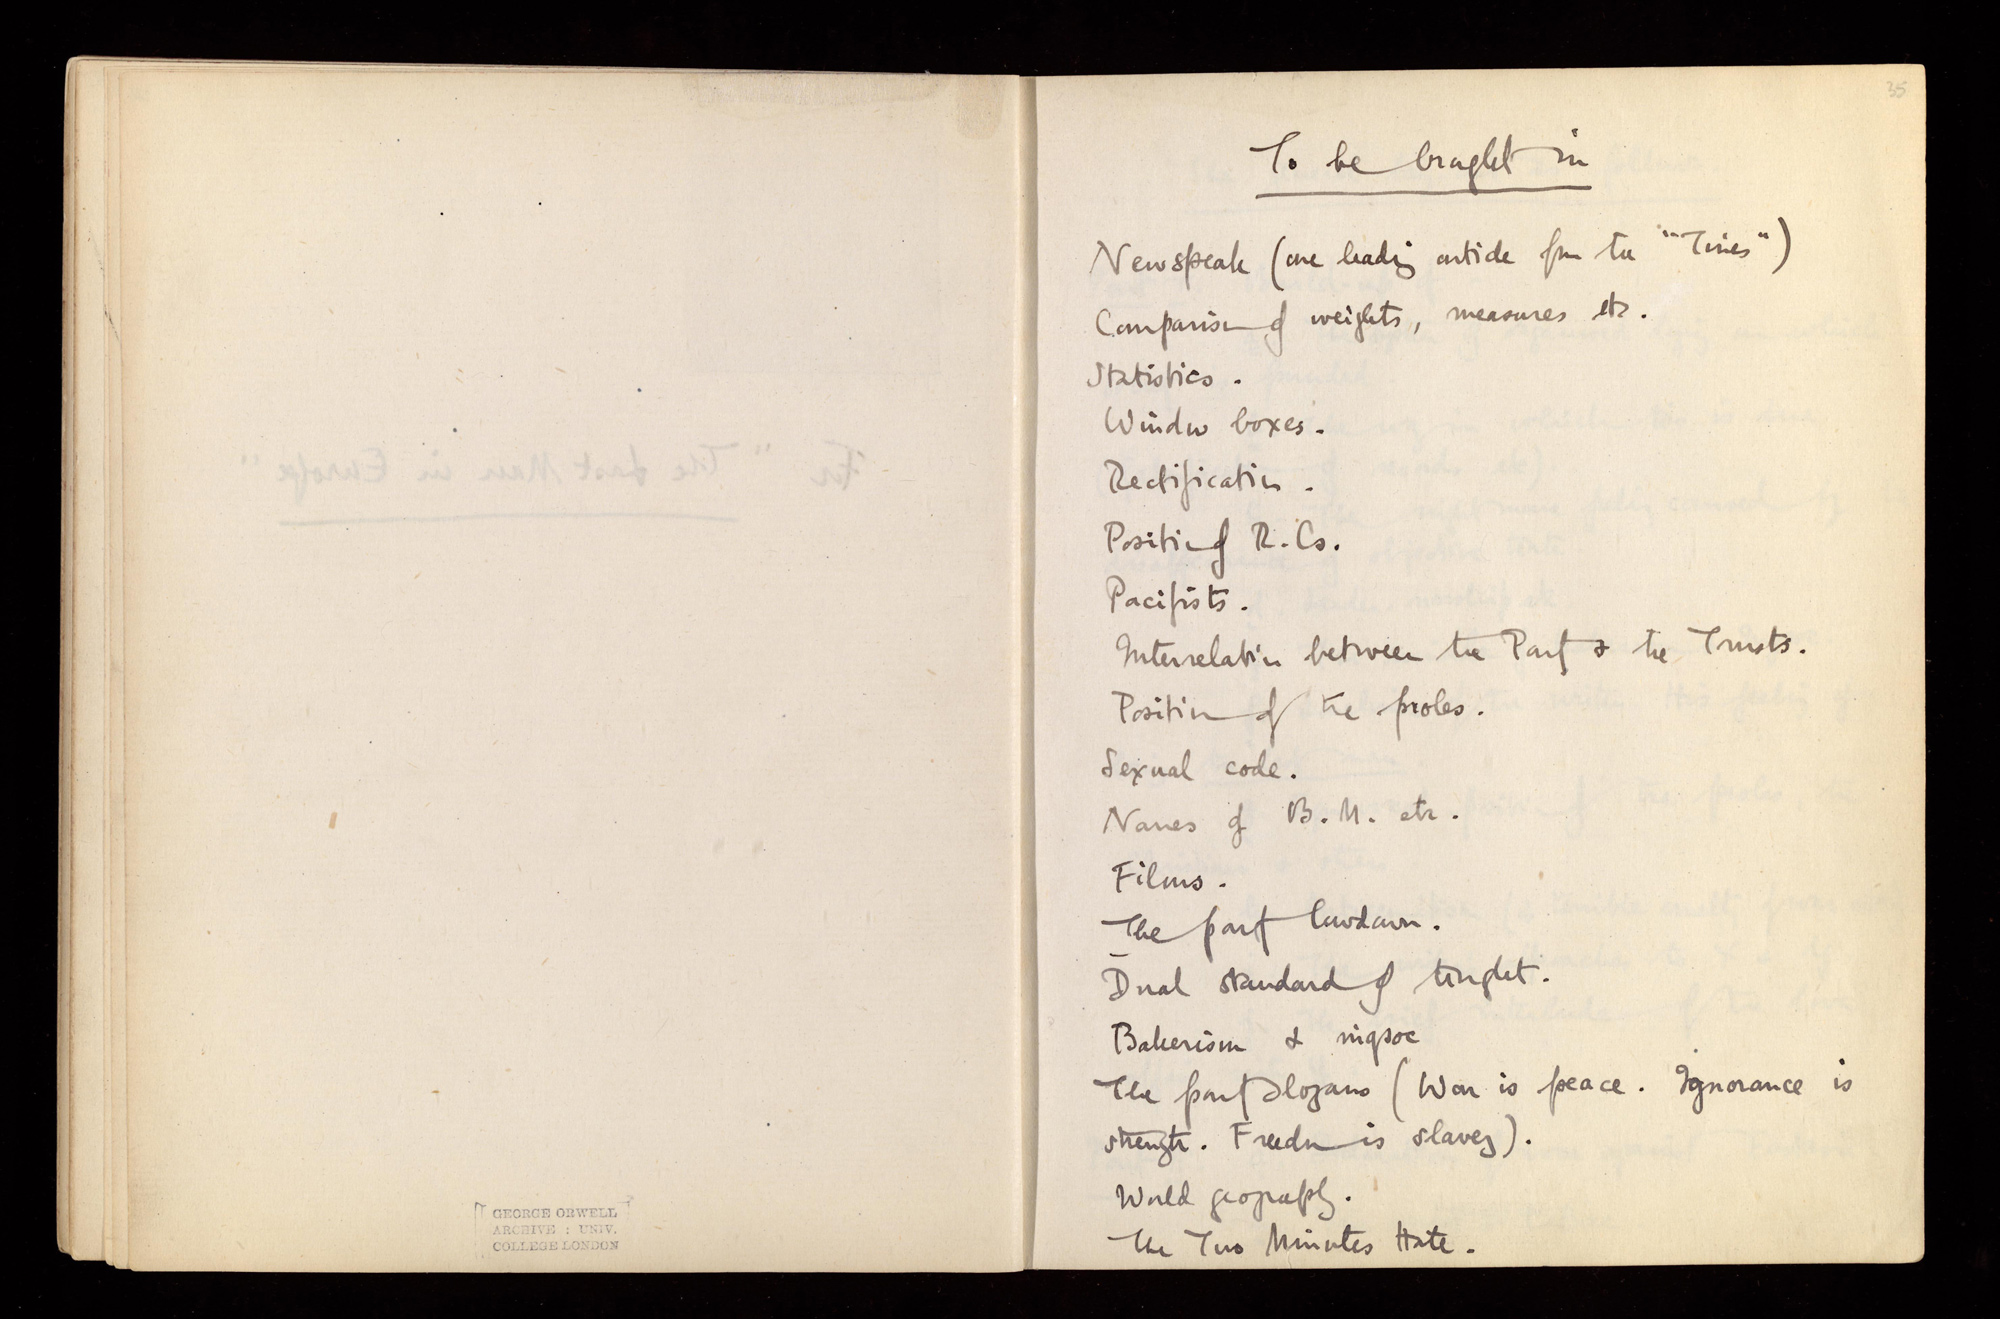 George Orwell's Literary notebook 1939/40-1946/47, with notes for Nineteen Eighty-Four